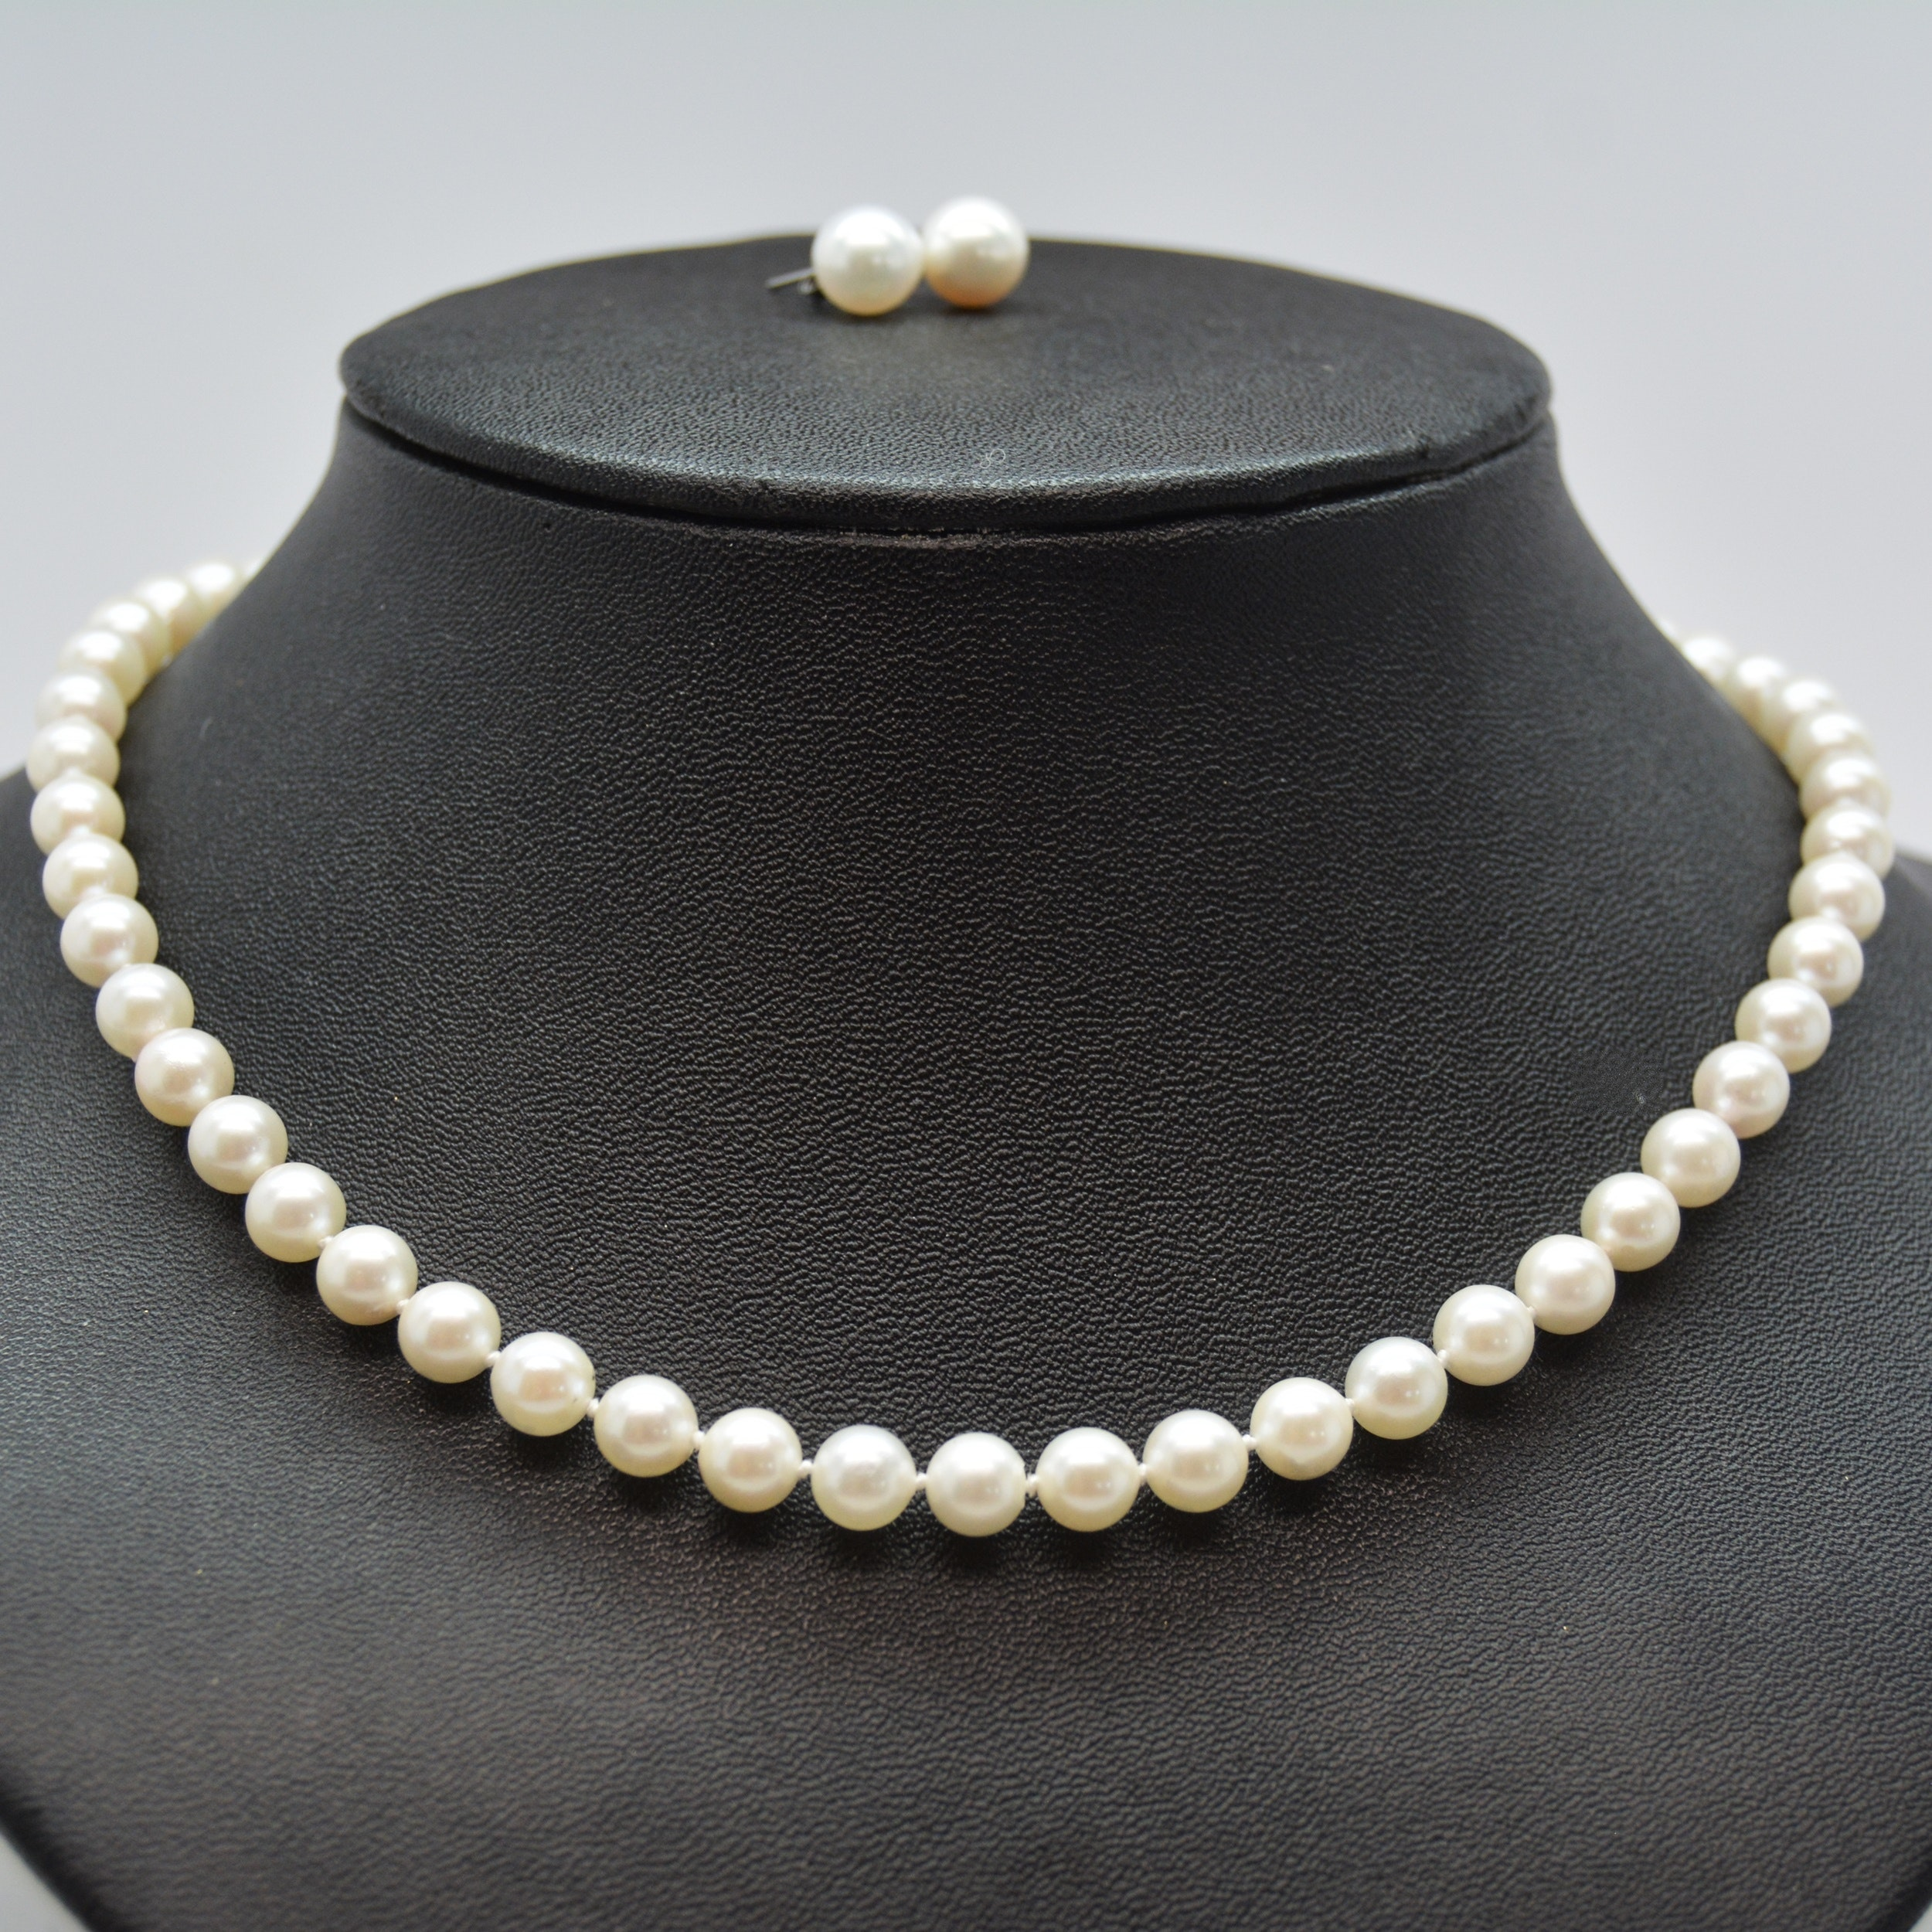 14K White Gold Cultured Pearl Necklace and Pierced Earrings